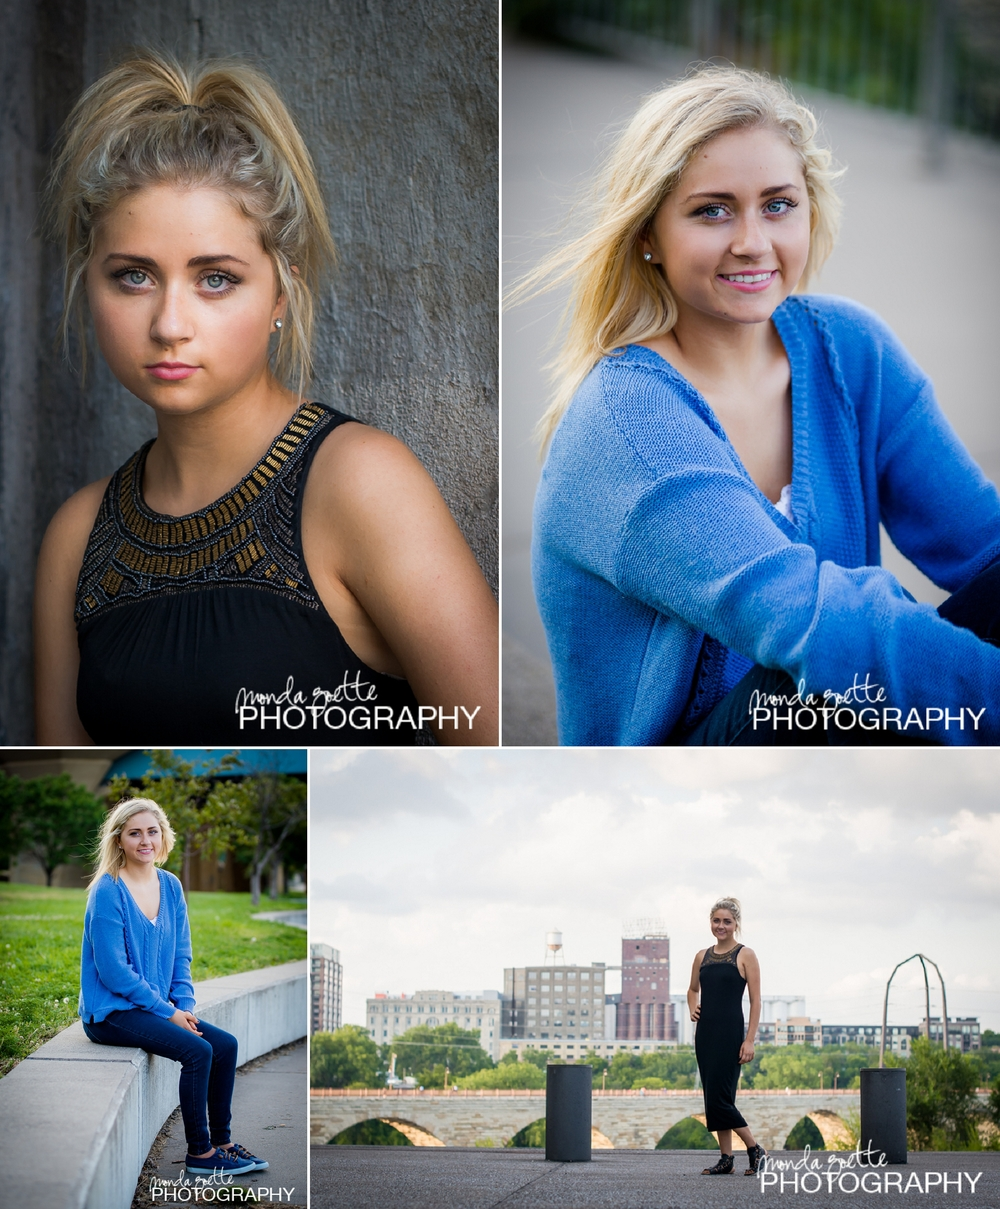 Capturing stunning images in Minneapolis near the Stone Arch Bridge